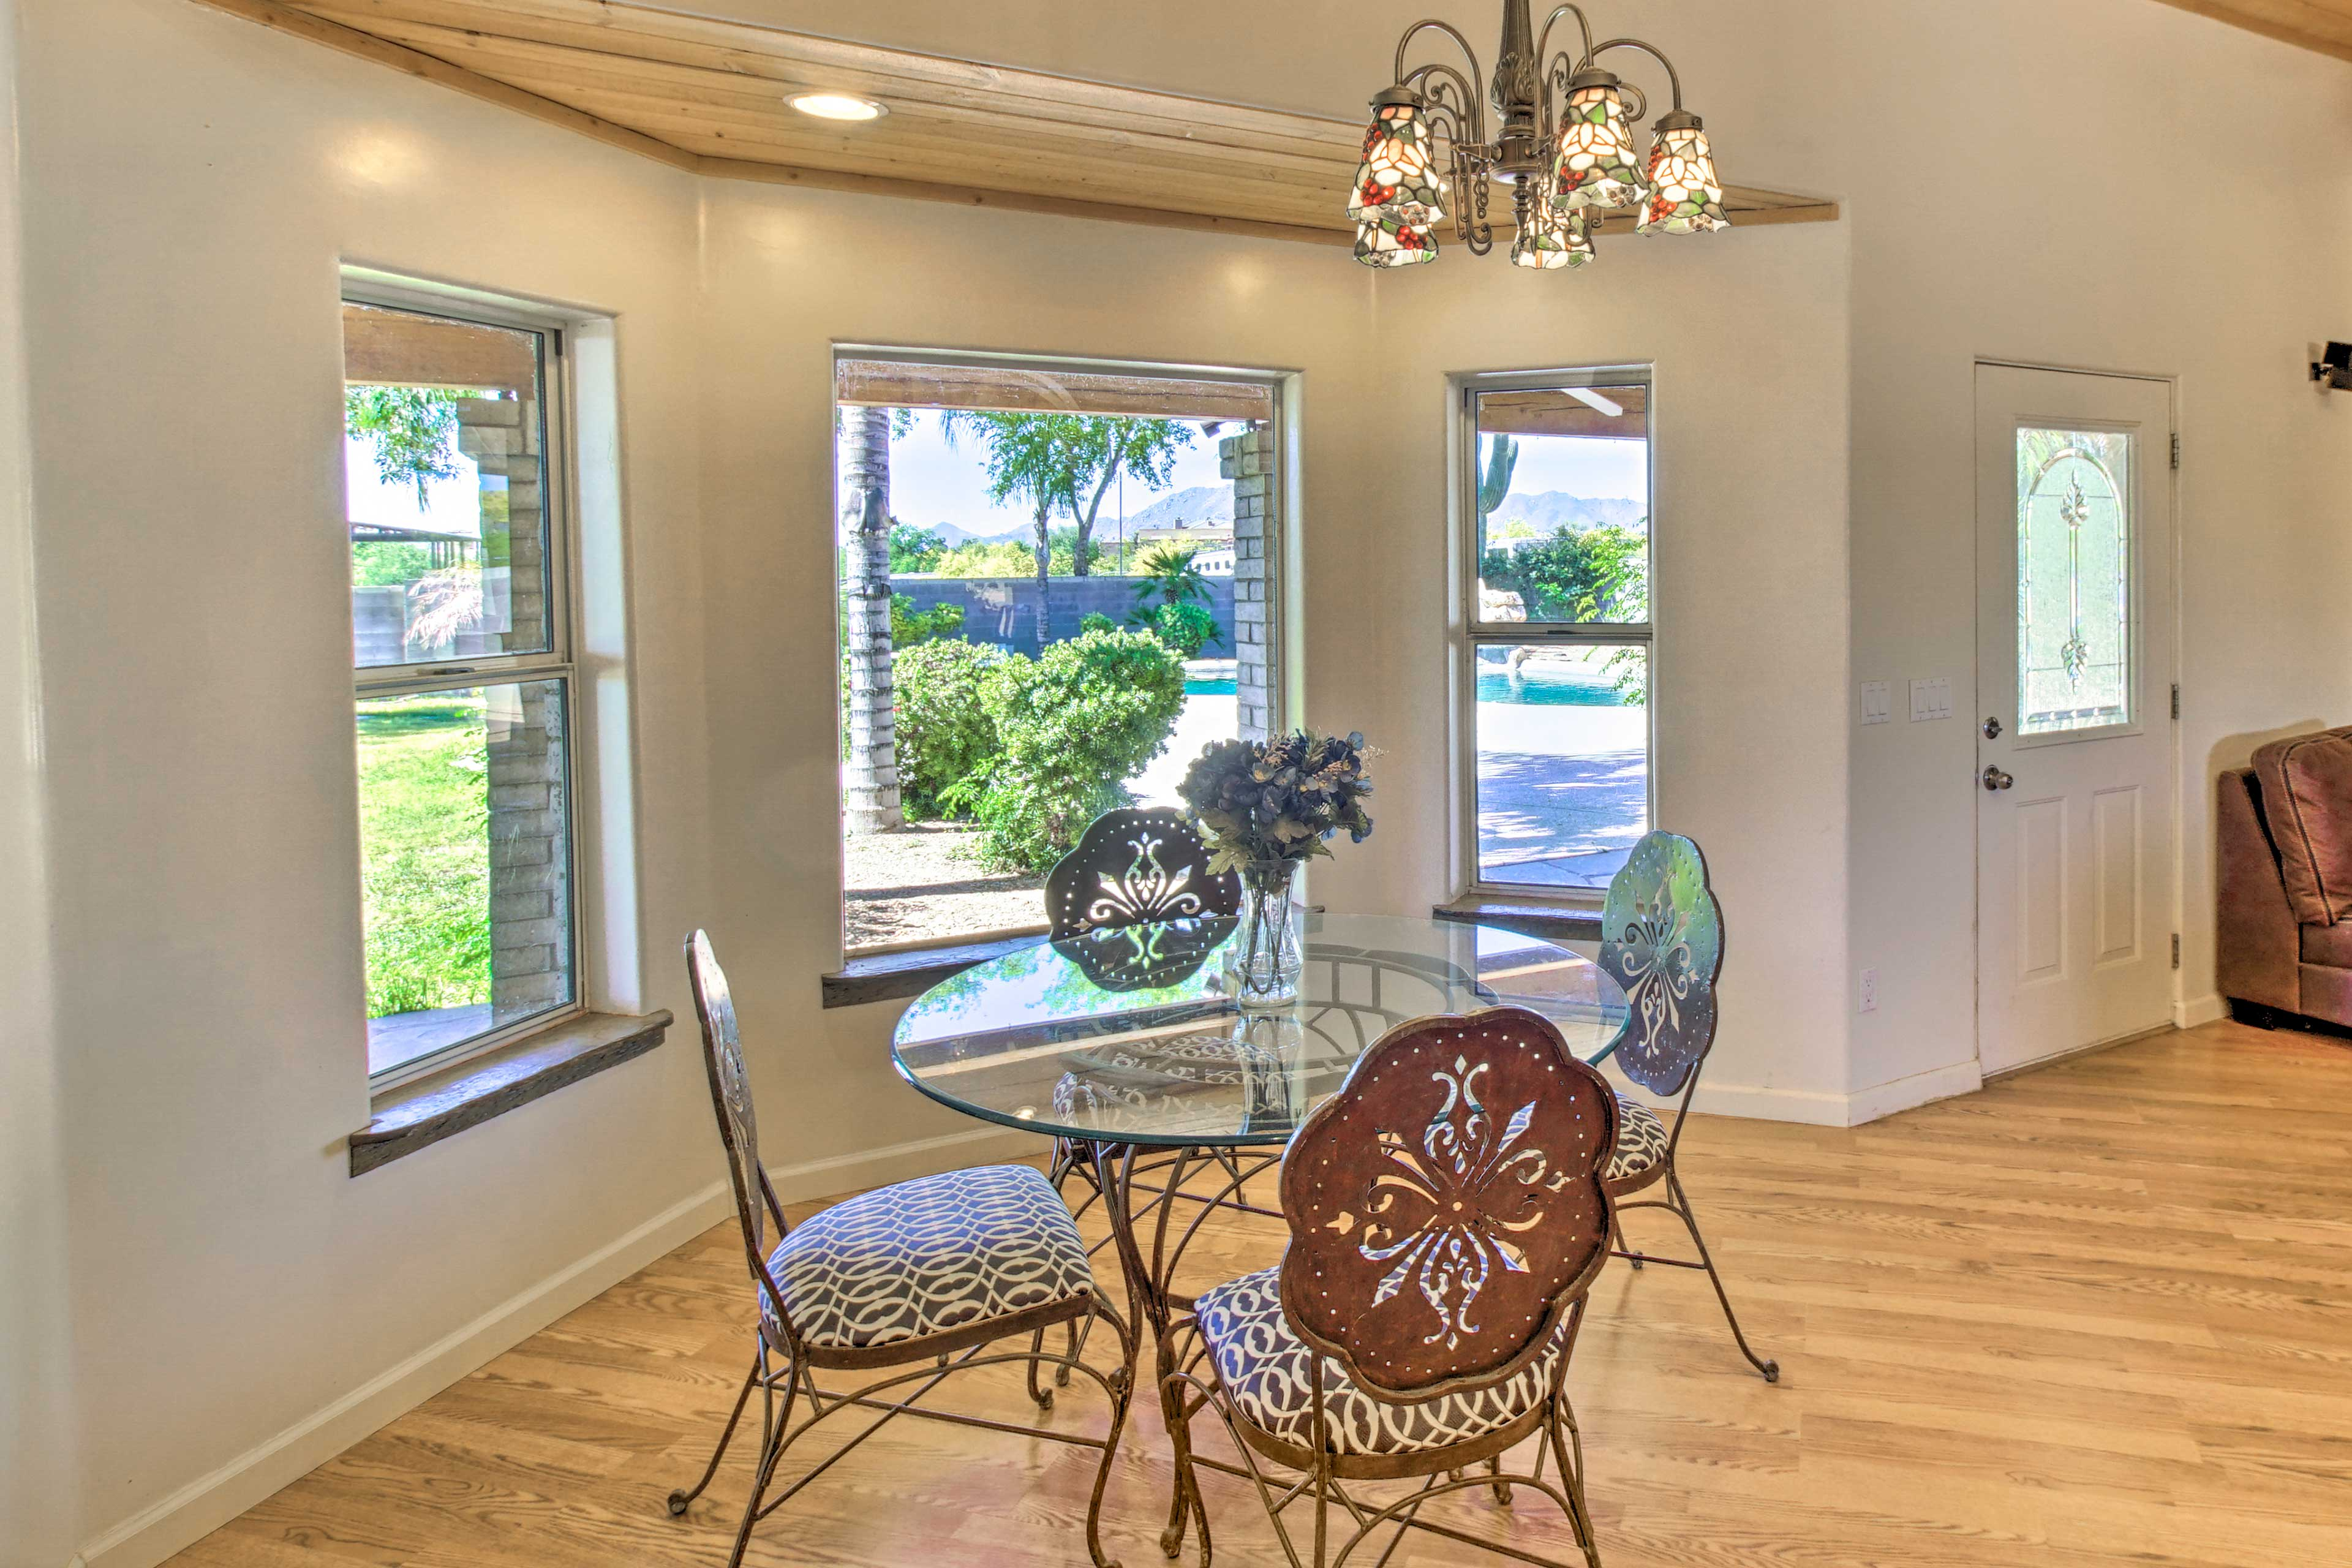 Plenty of natural light reaches this dining space.